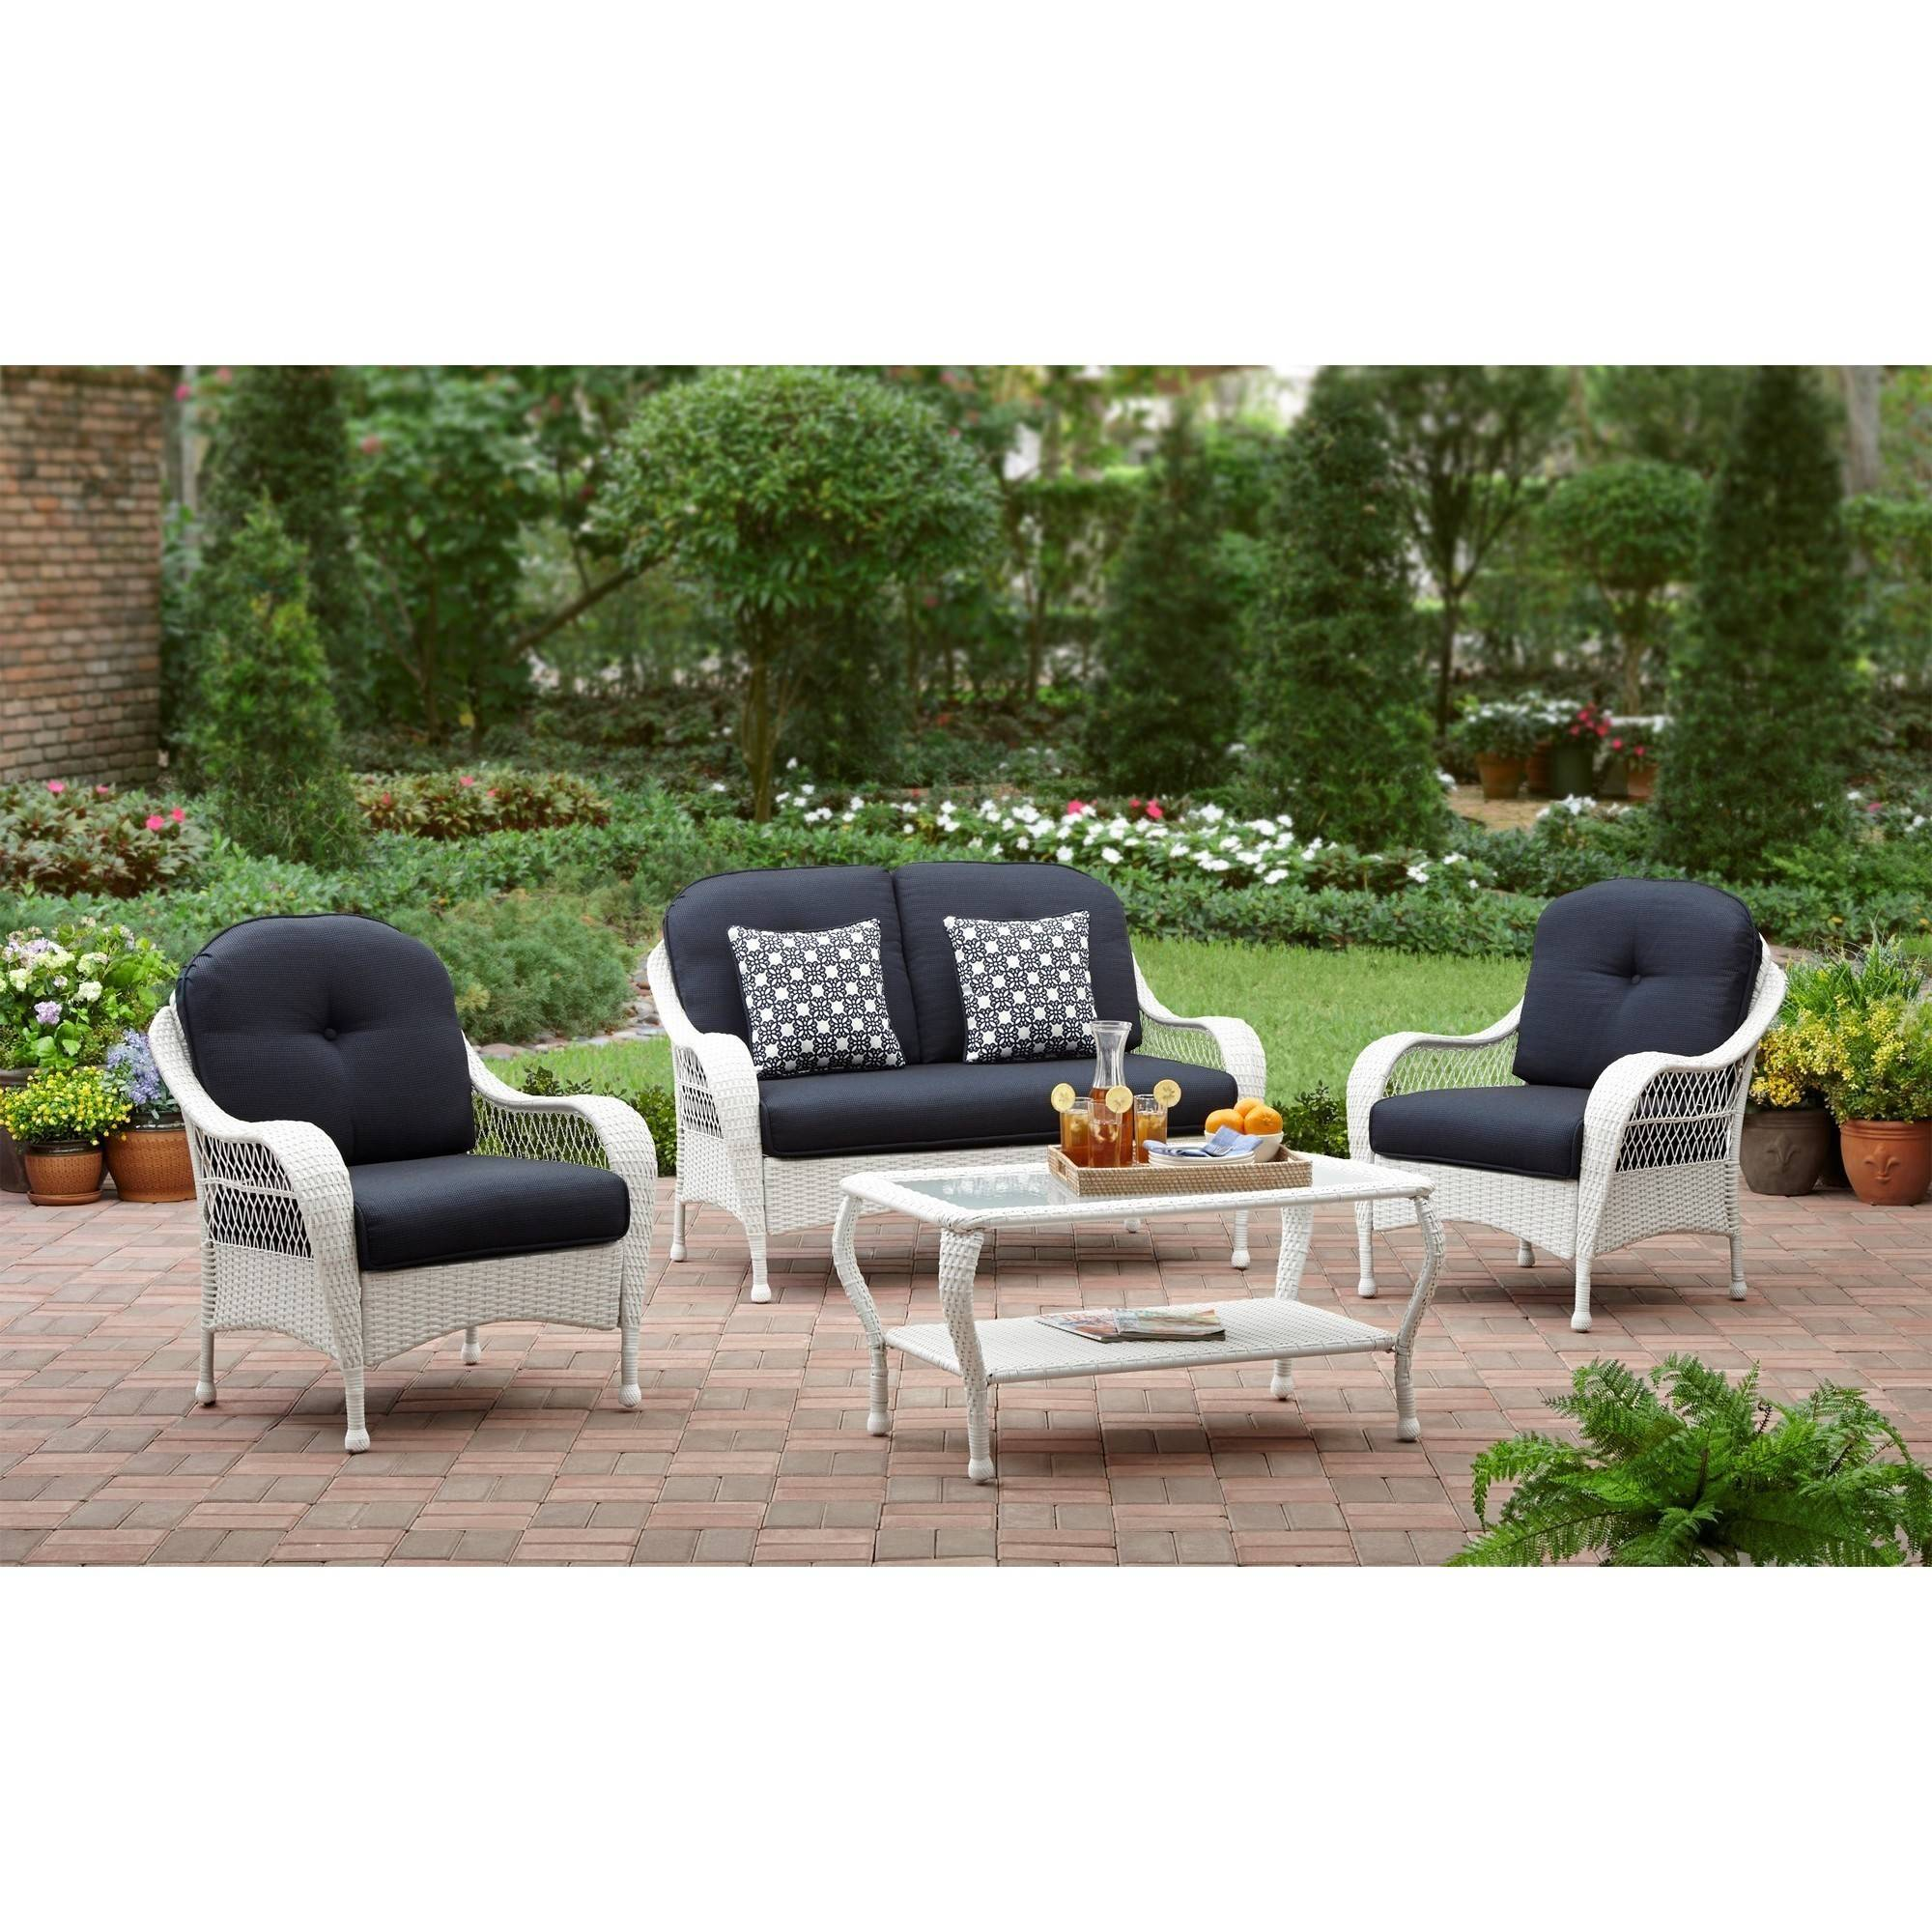 Click here to buy Better Homes and Gardens Azalea Ridge Outdoor Patio Conversation Set by Zhejiang Huayue Furniture.